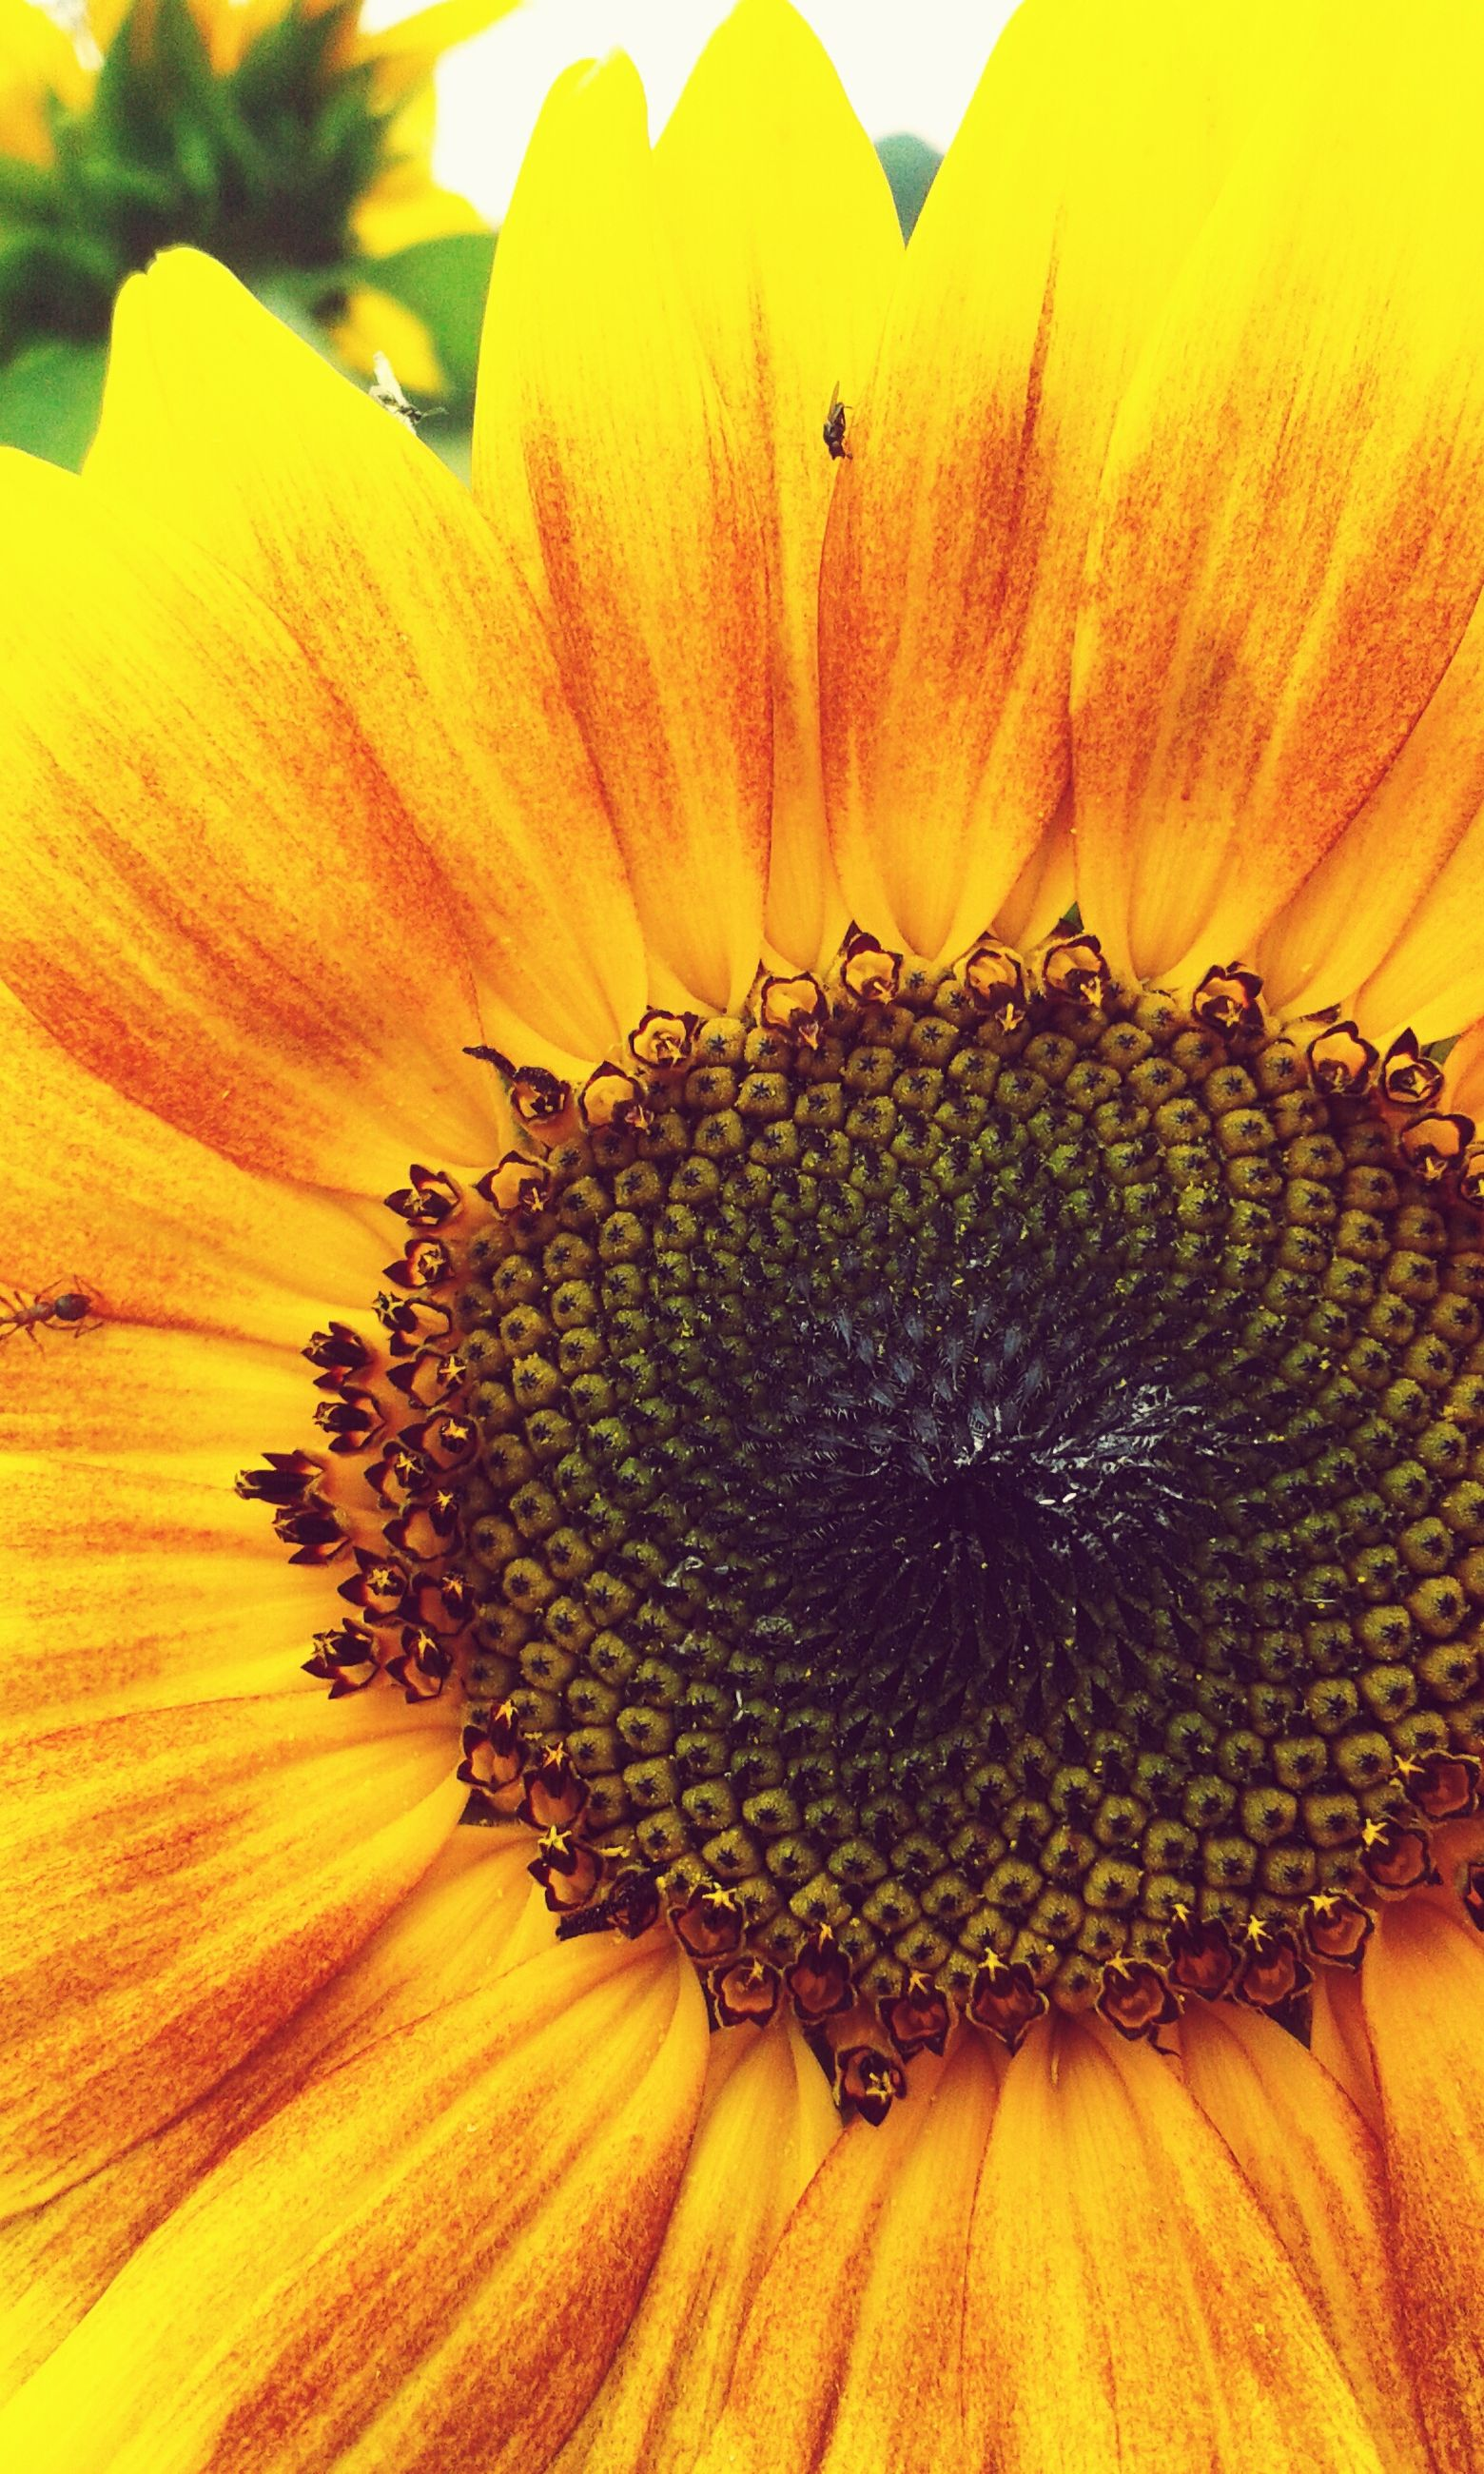 flower, yellow, petal, flower head, freshness, close-up, single flower, fragility, beauty in nature, sunflower, pollen, growth, nature, natural pattern, extreme close-up, blooming, full frame, plant, stamen, backgrounds